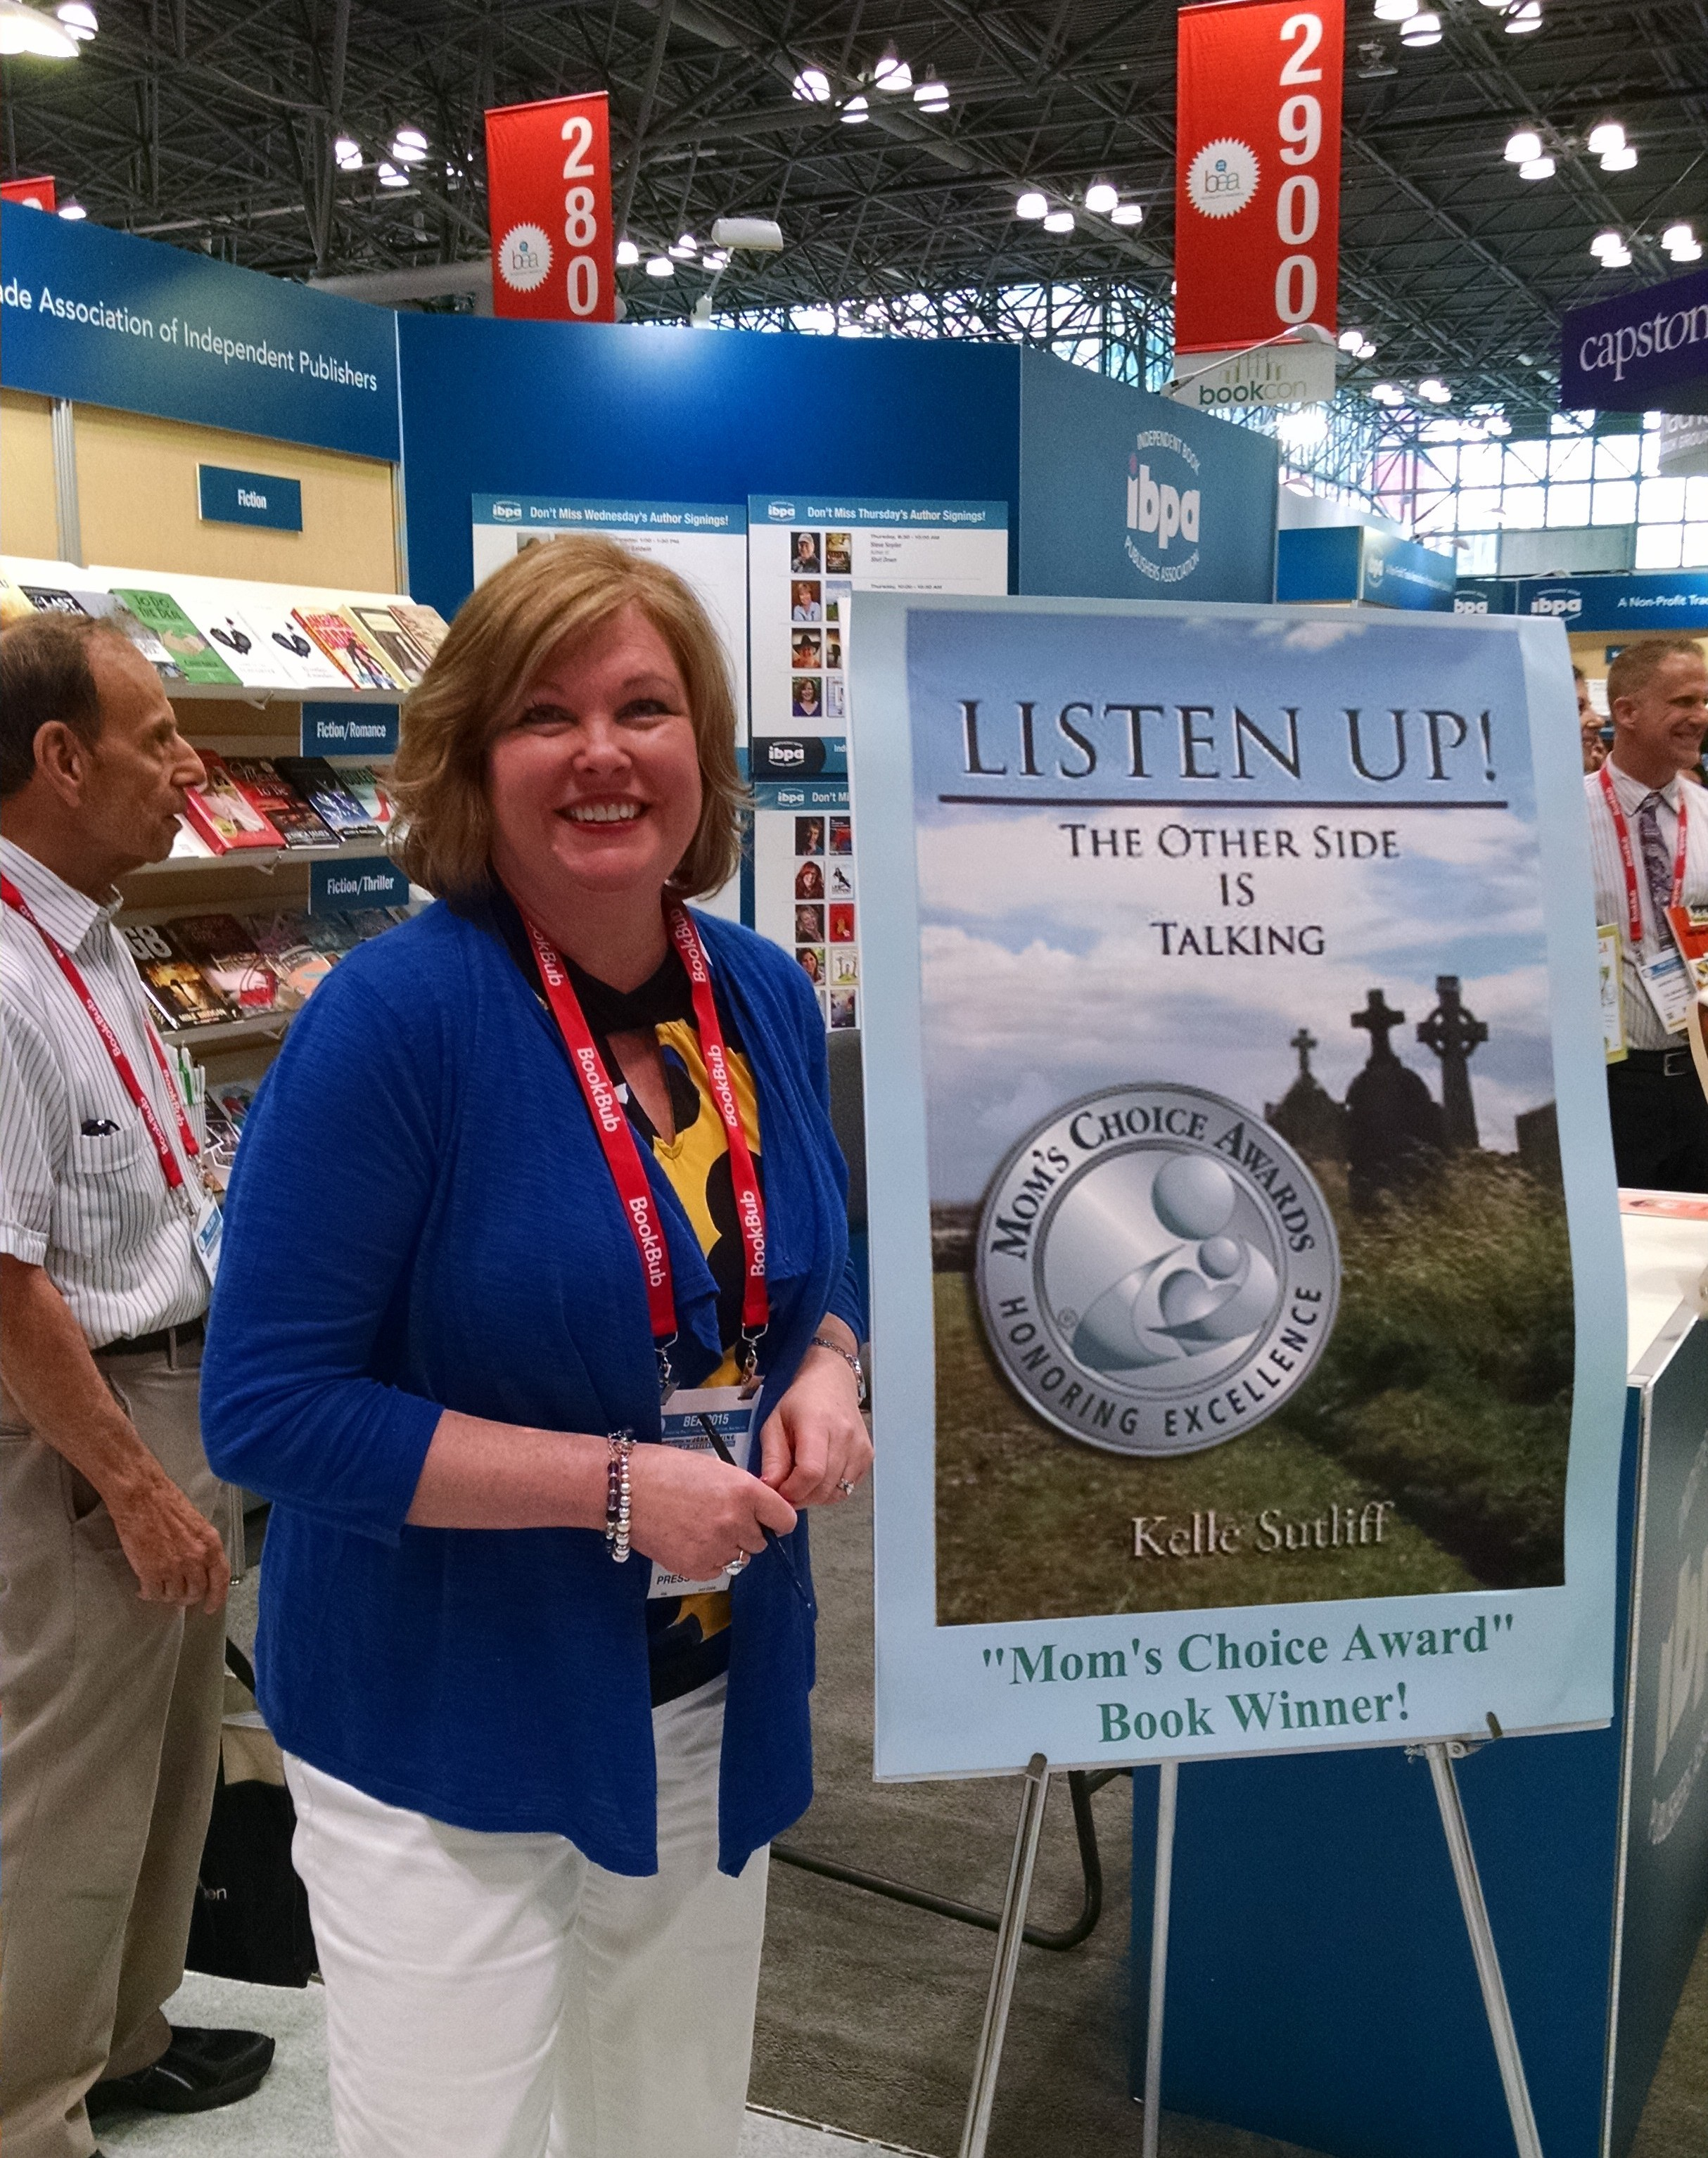 Author Kelle Sutliff Receives Mom's Choice Book Award